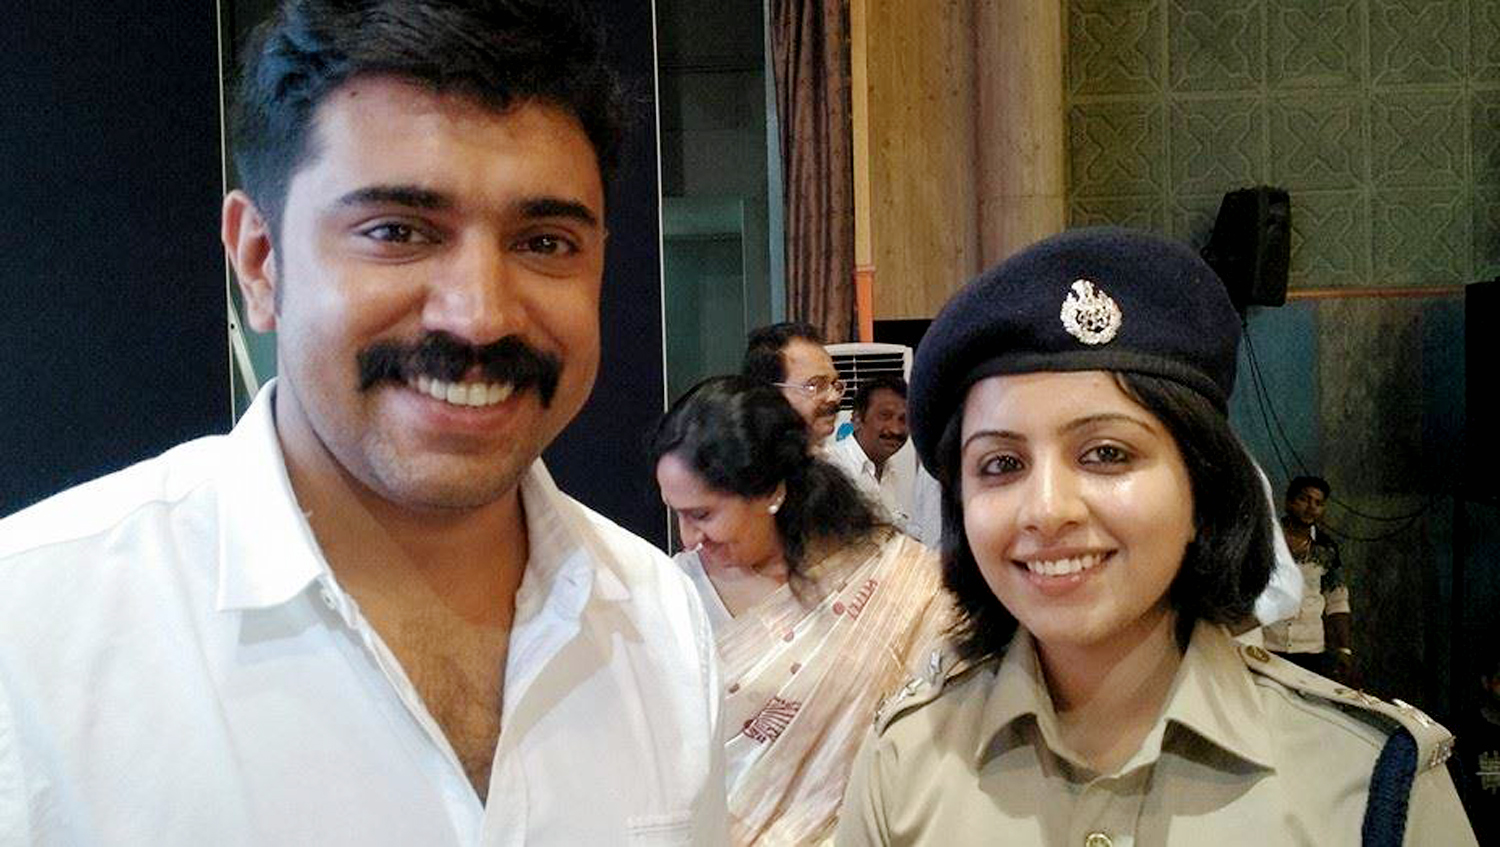 Picture with Nivin Pauly landed Merin Joseph in trouble